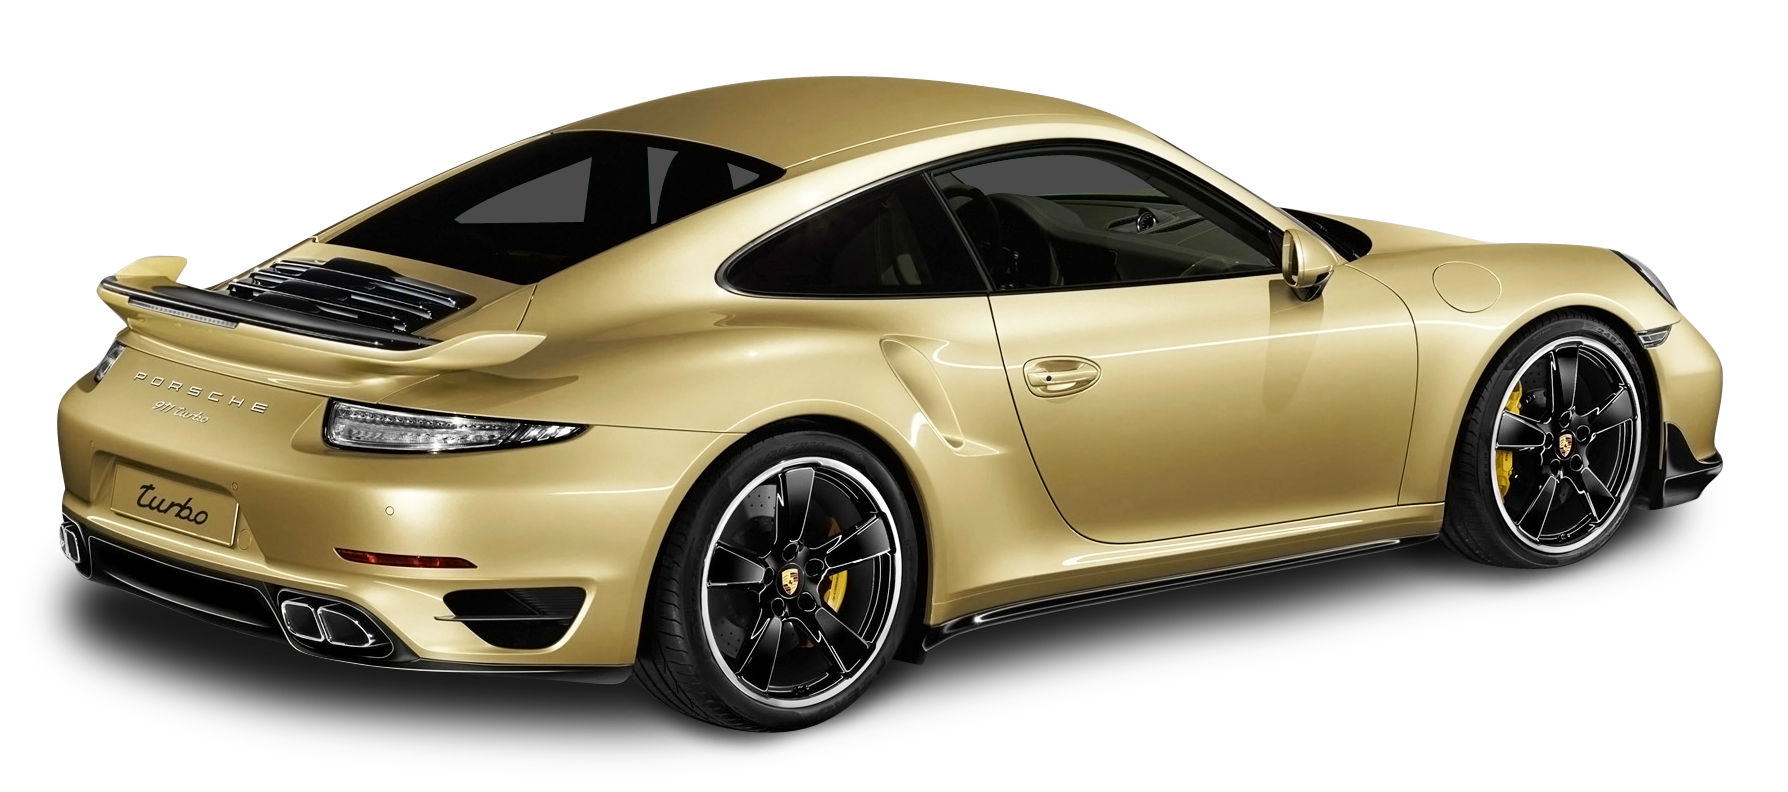 Porsche 911 Turbo Aerokit Gold Car PNG Image